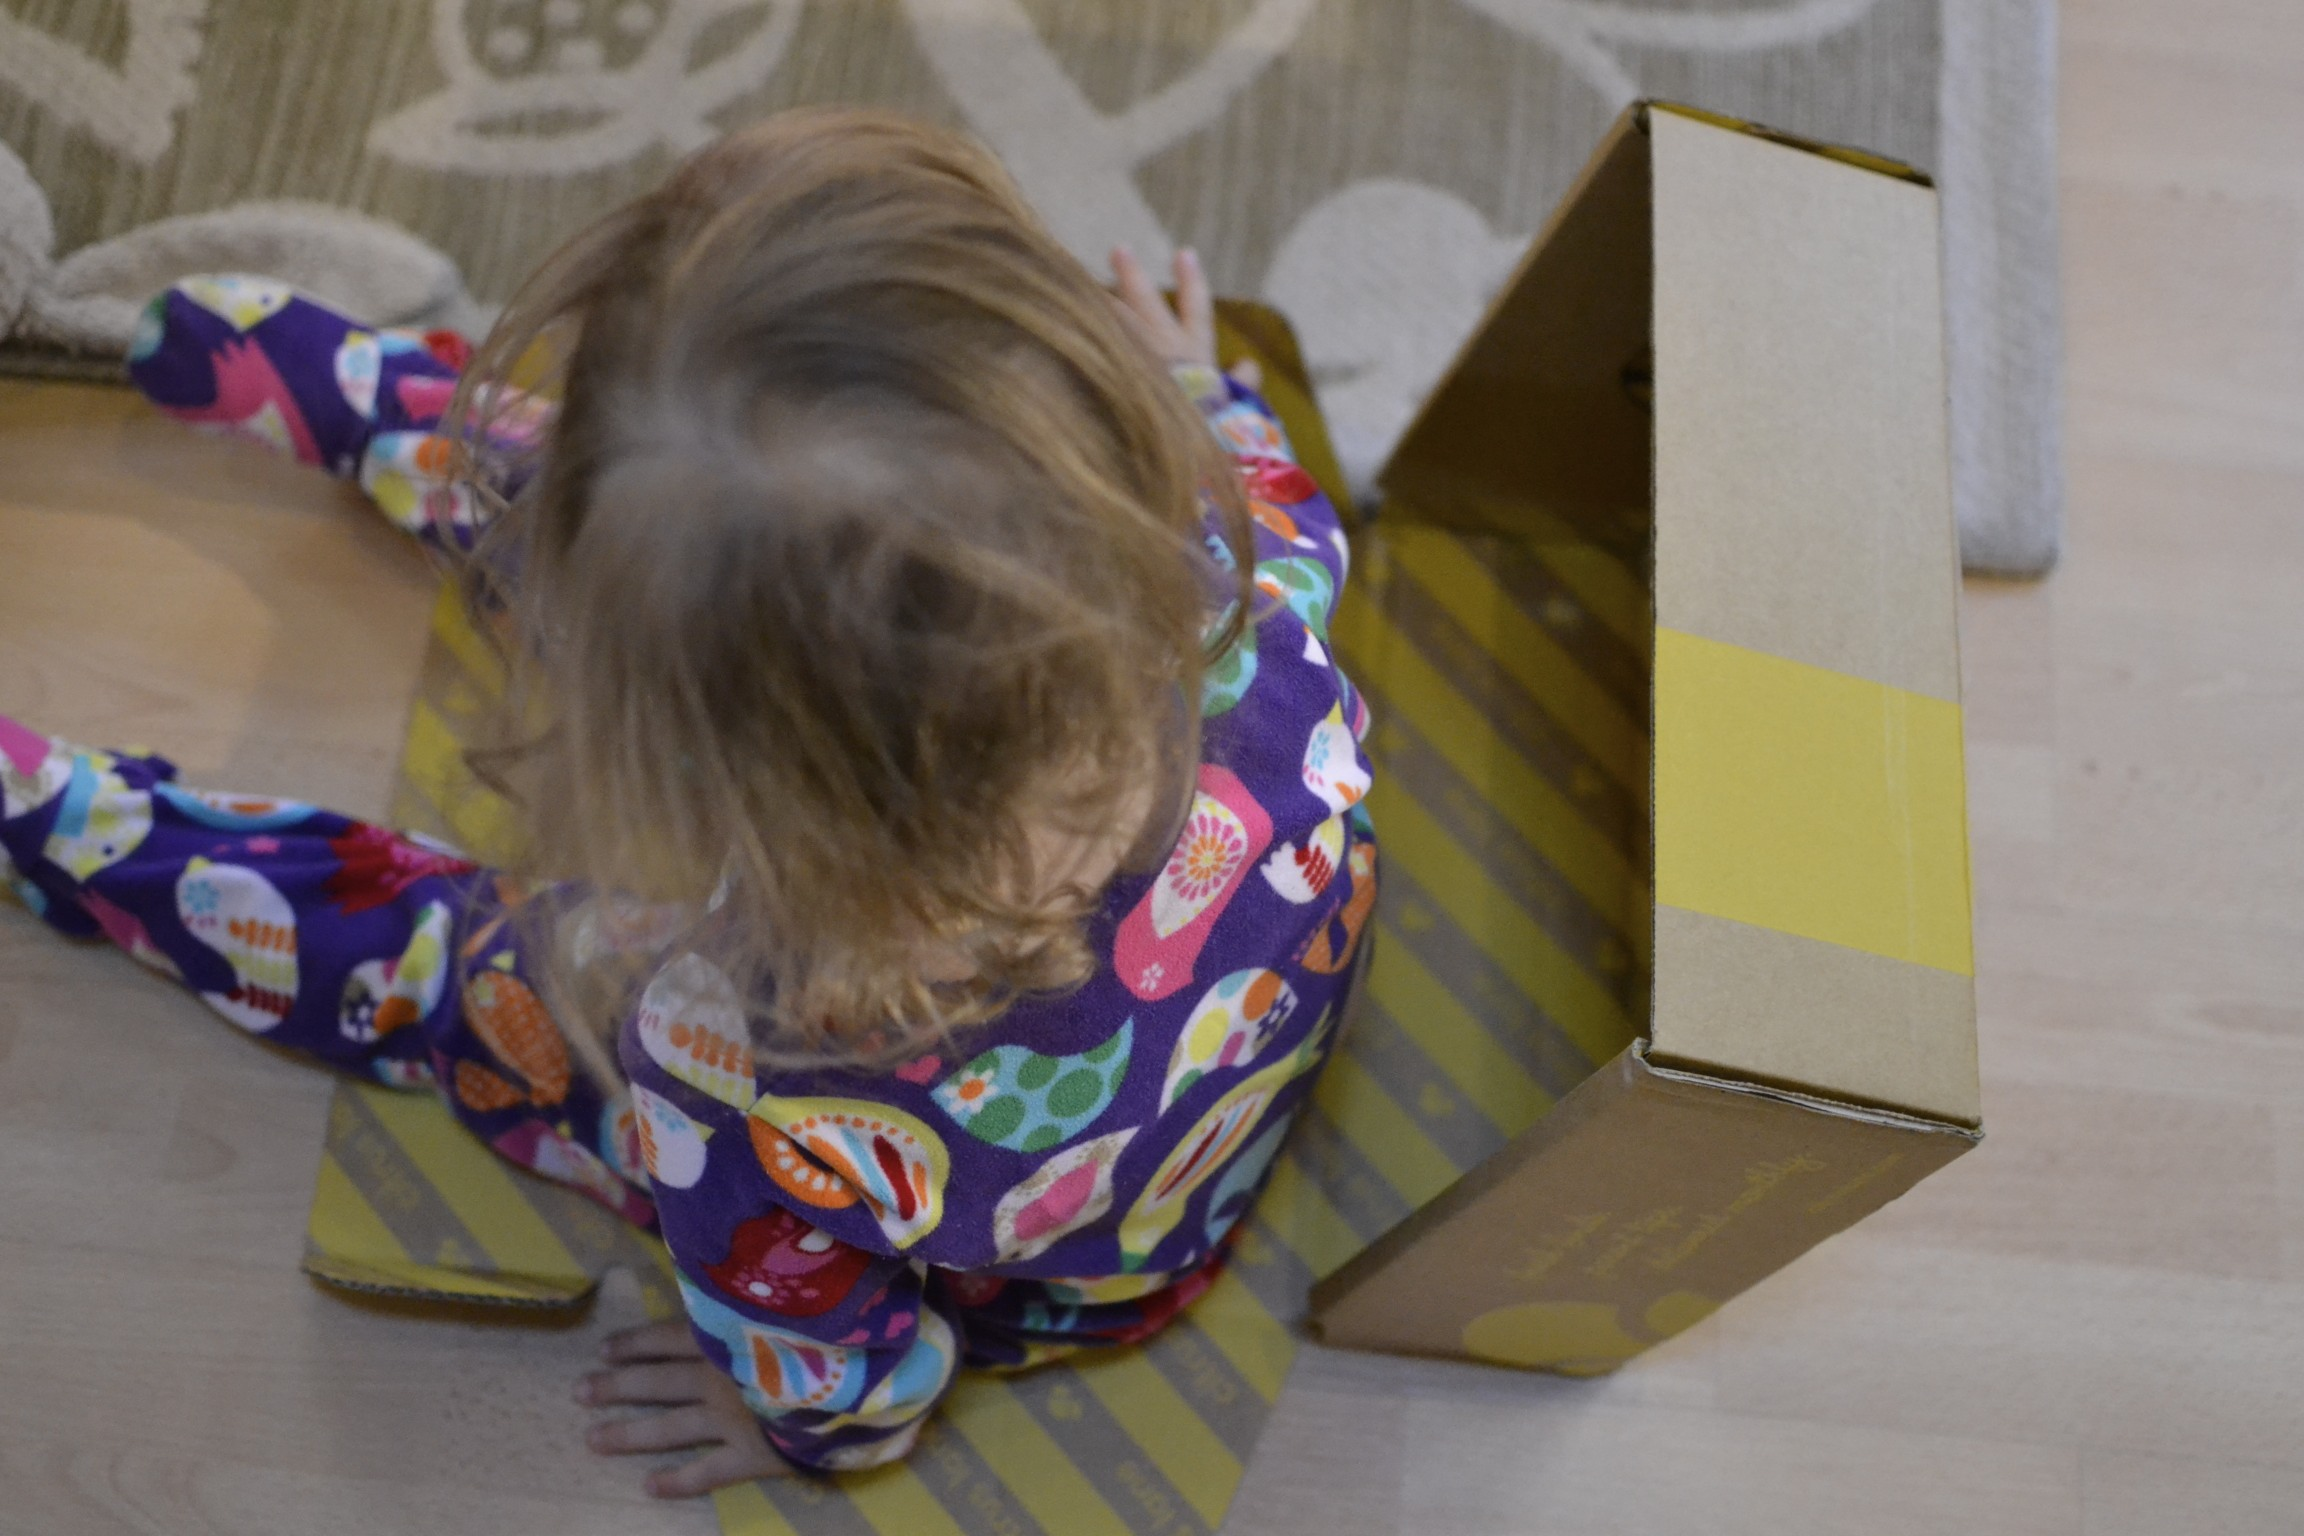 bed head, pjs and playing with boxes